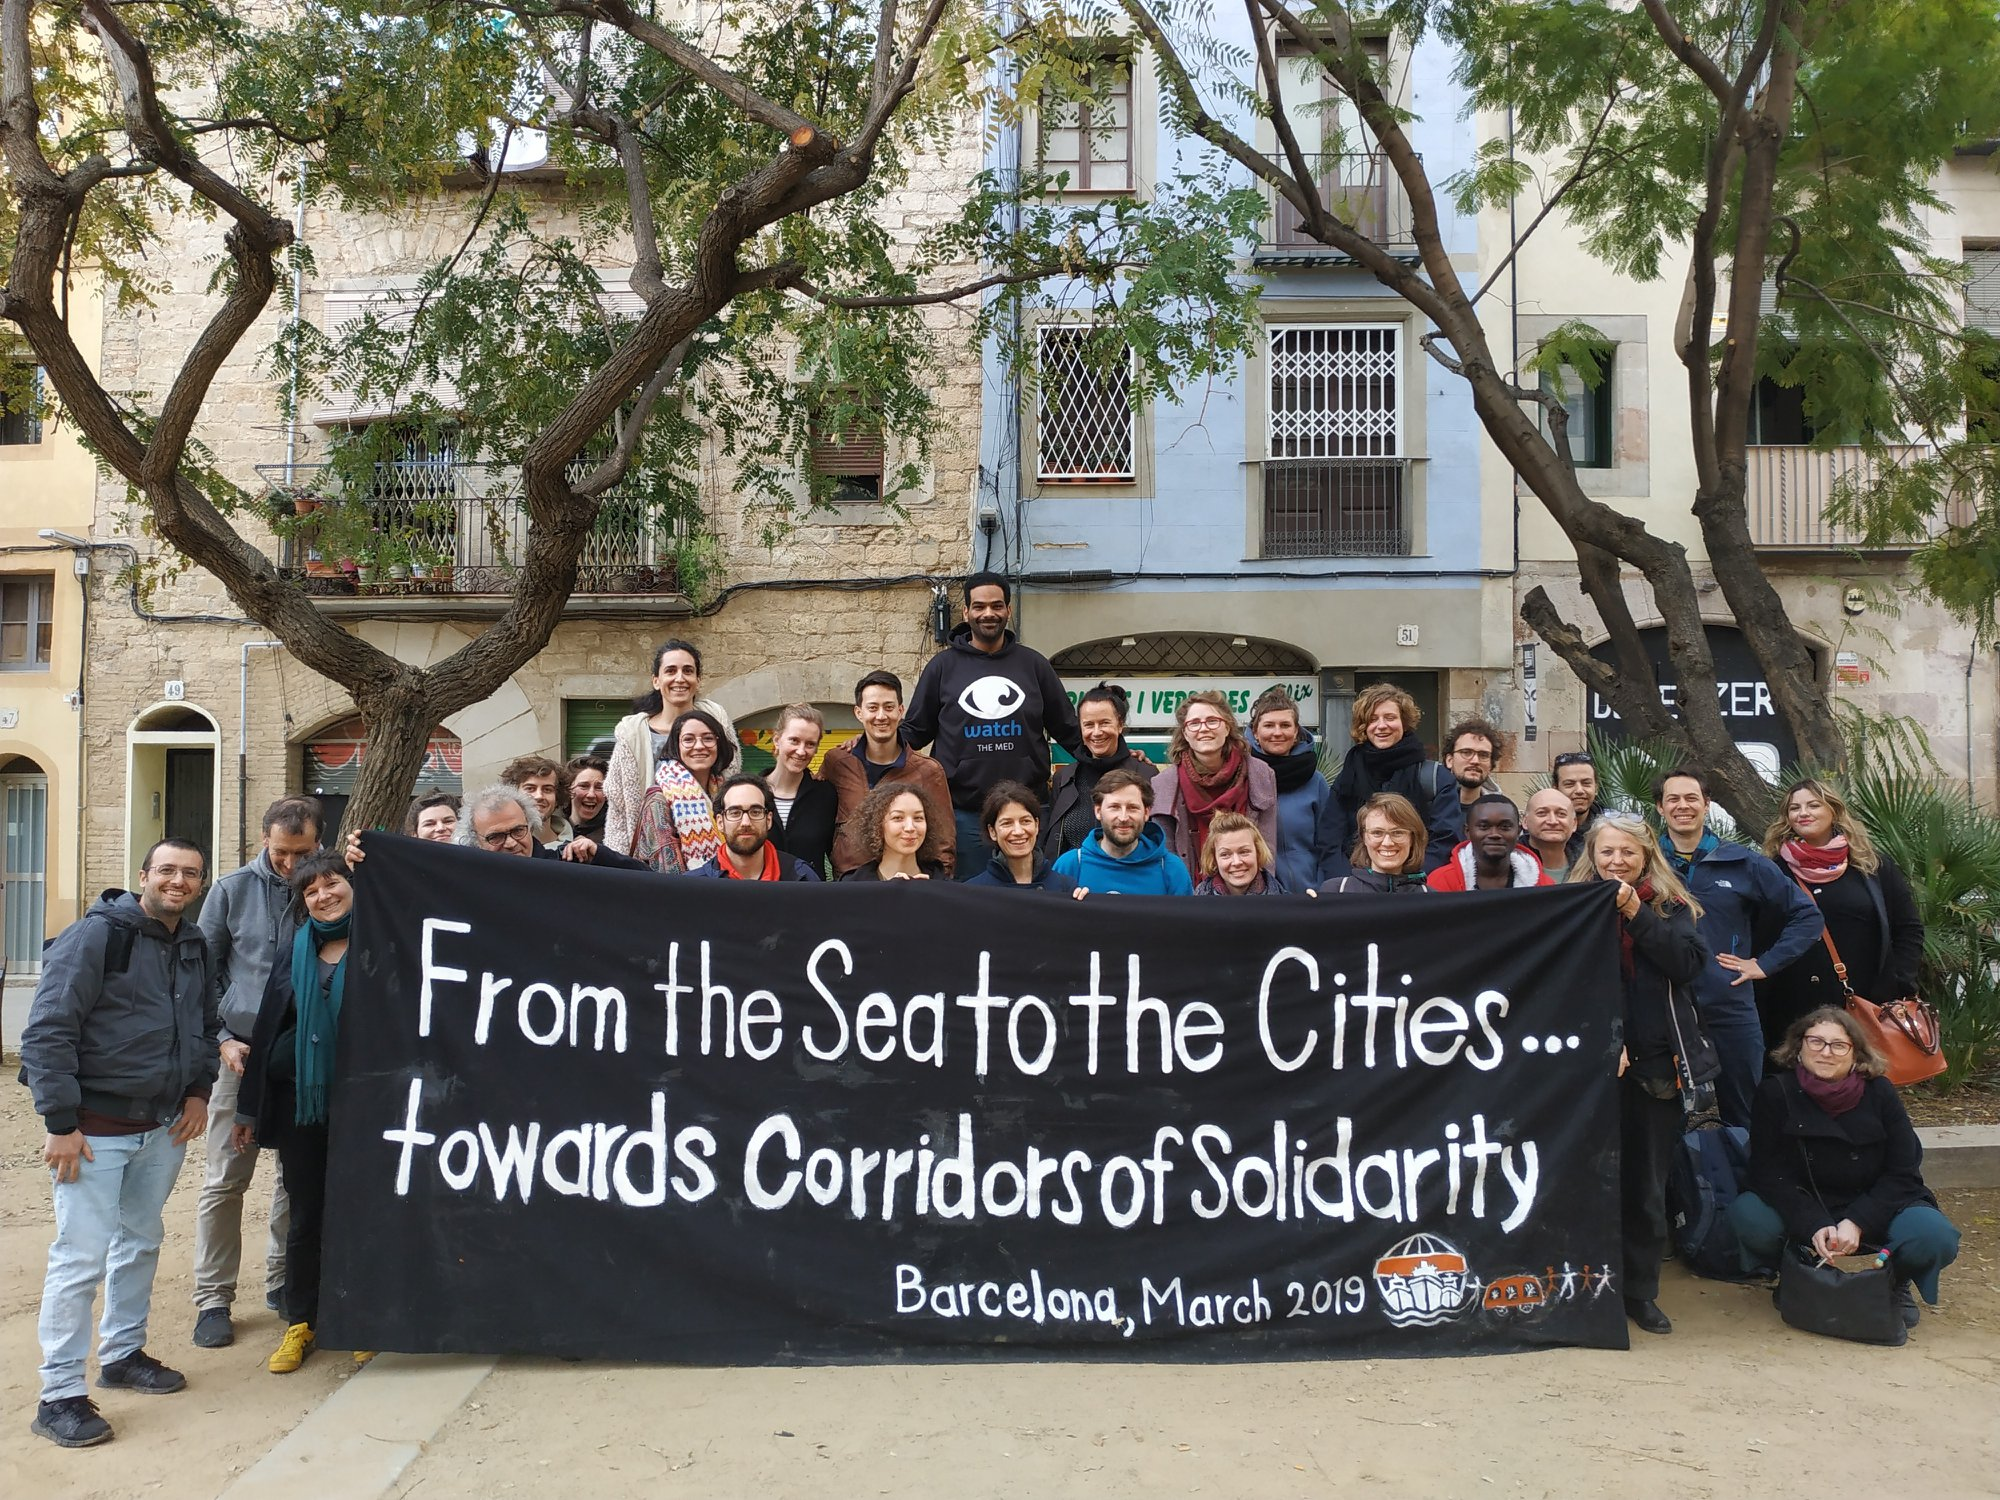 Group of people behind a banner in Barcelona